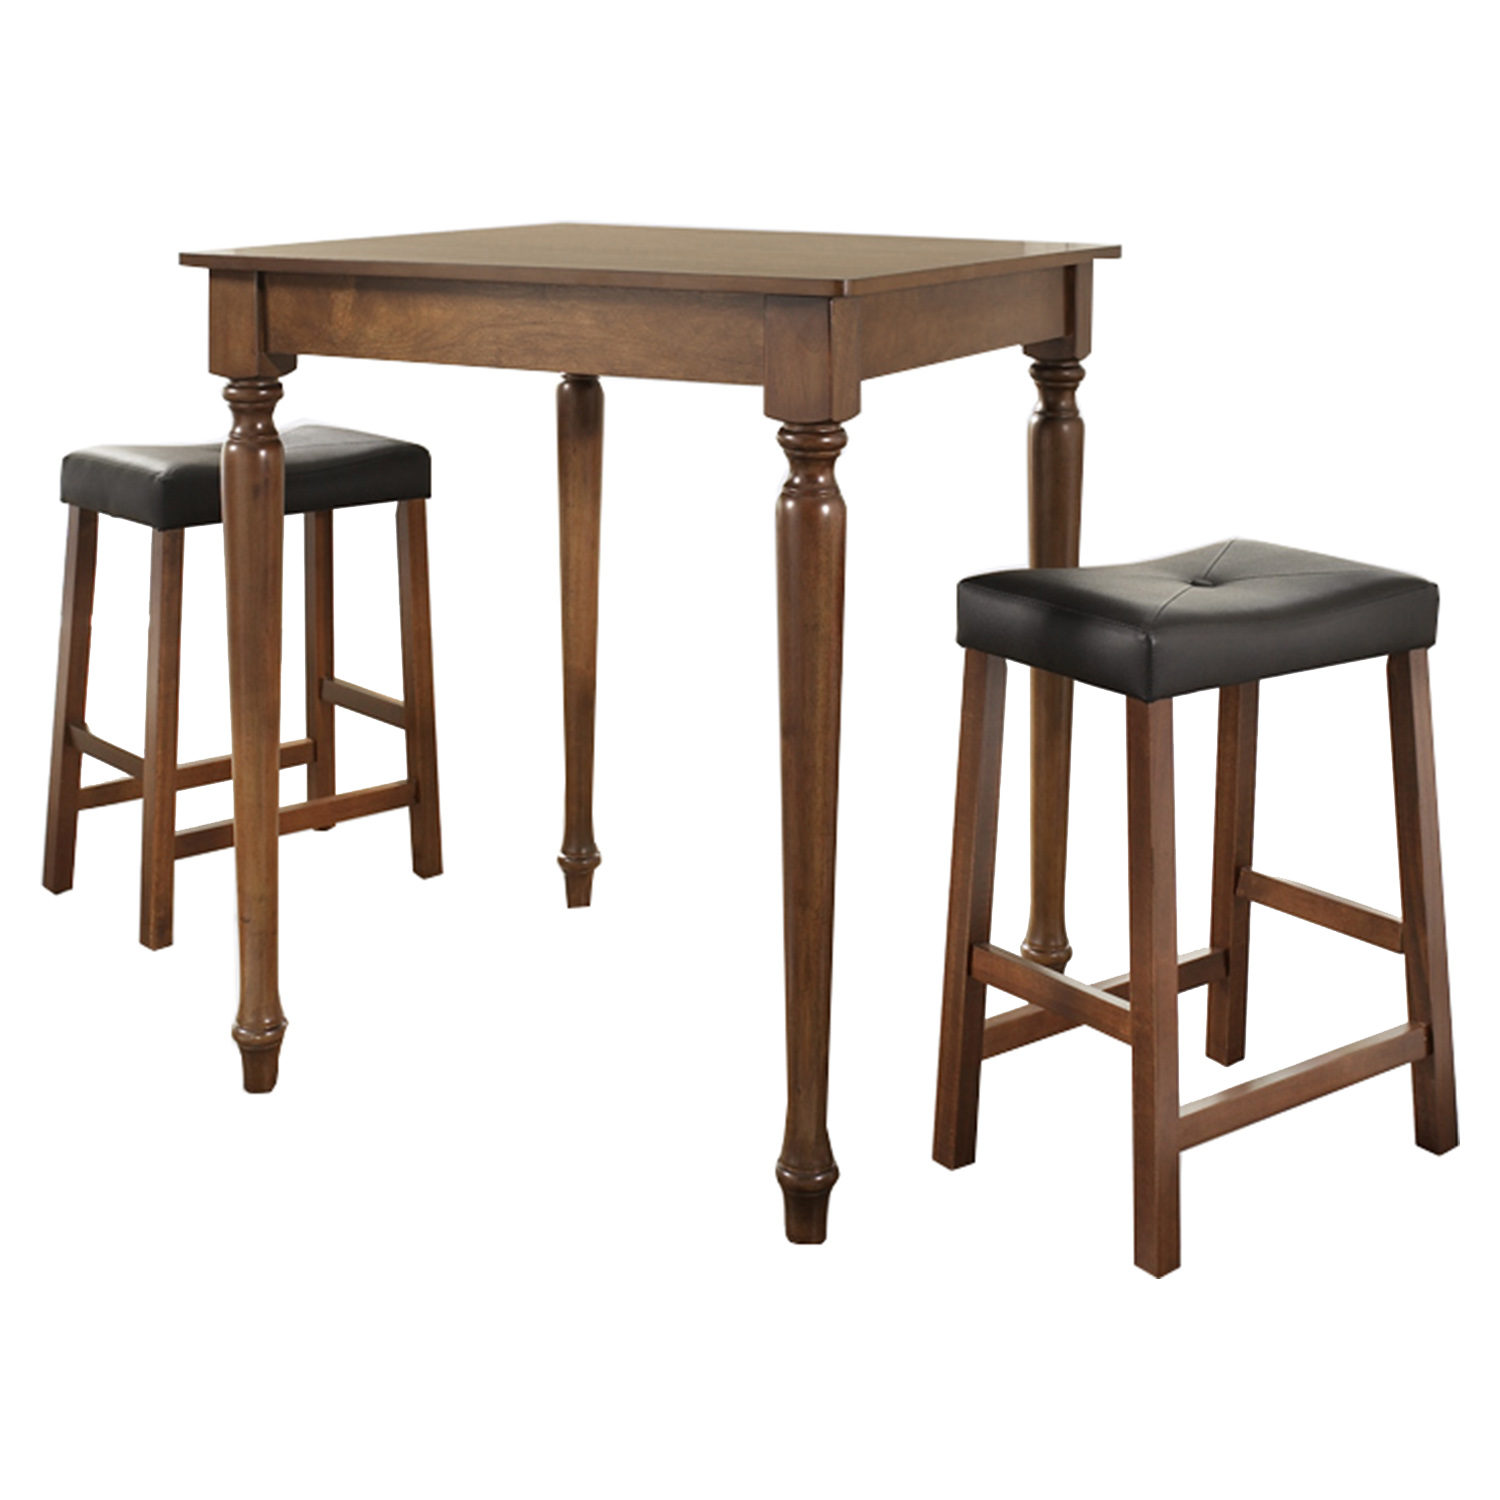 3-Piece Pub Dining Set - Turned Table Legs, Saddle Stools, Cherry - CROS-KD320012CH